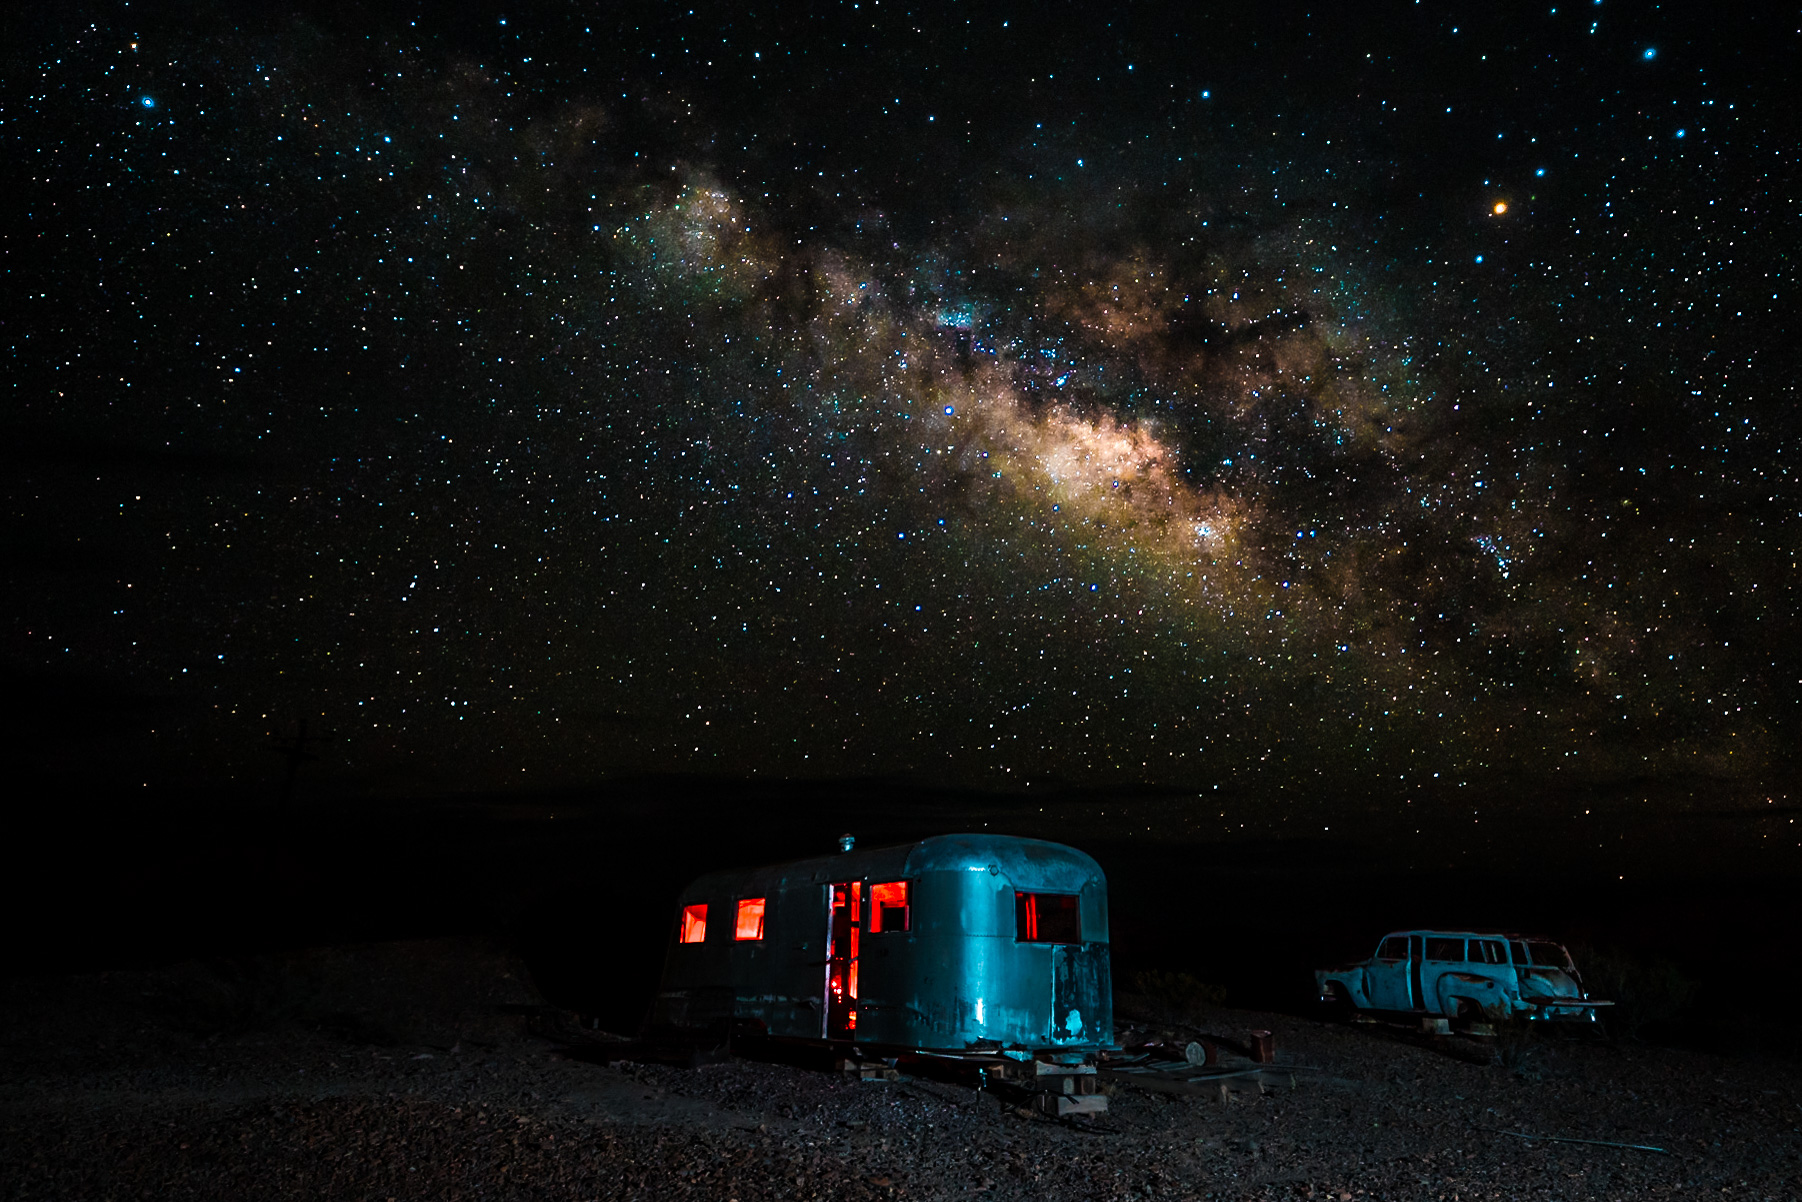 camping under starry skies